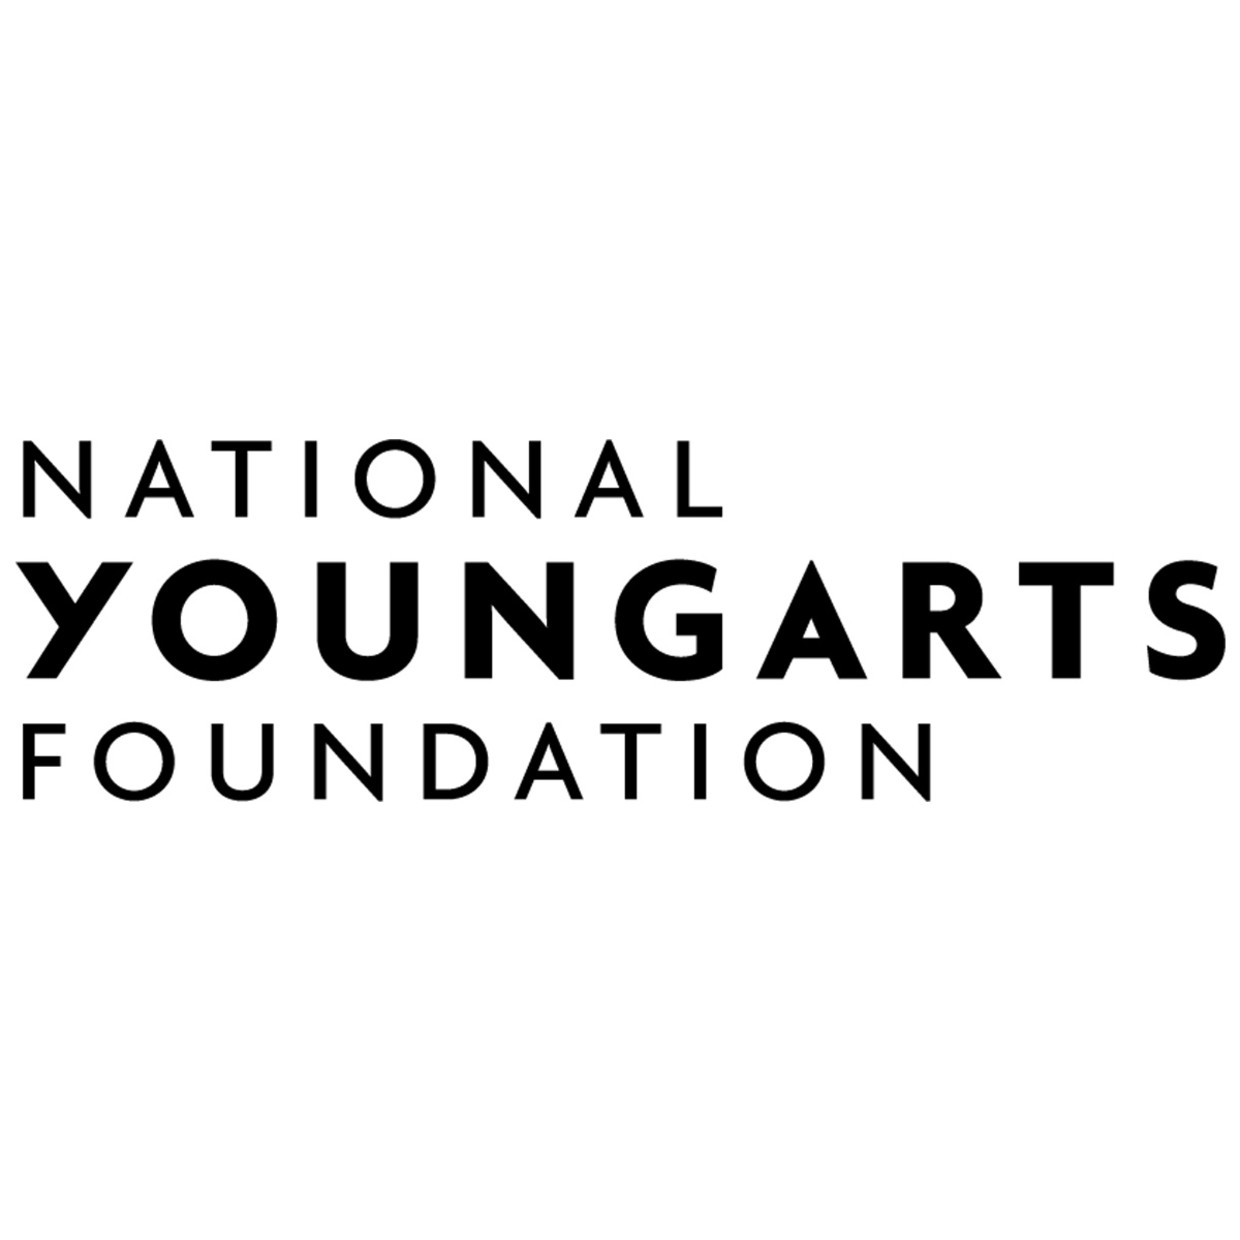 The National YoungArts Foundation